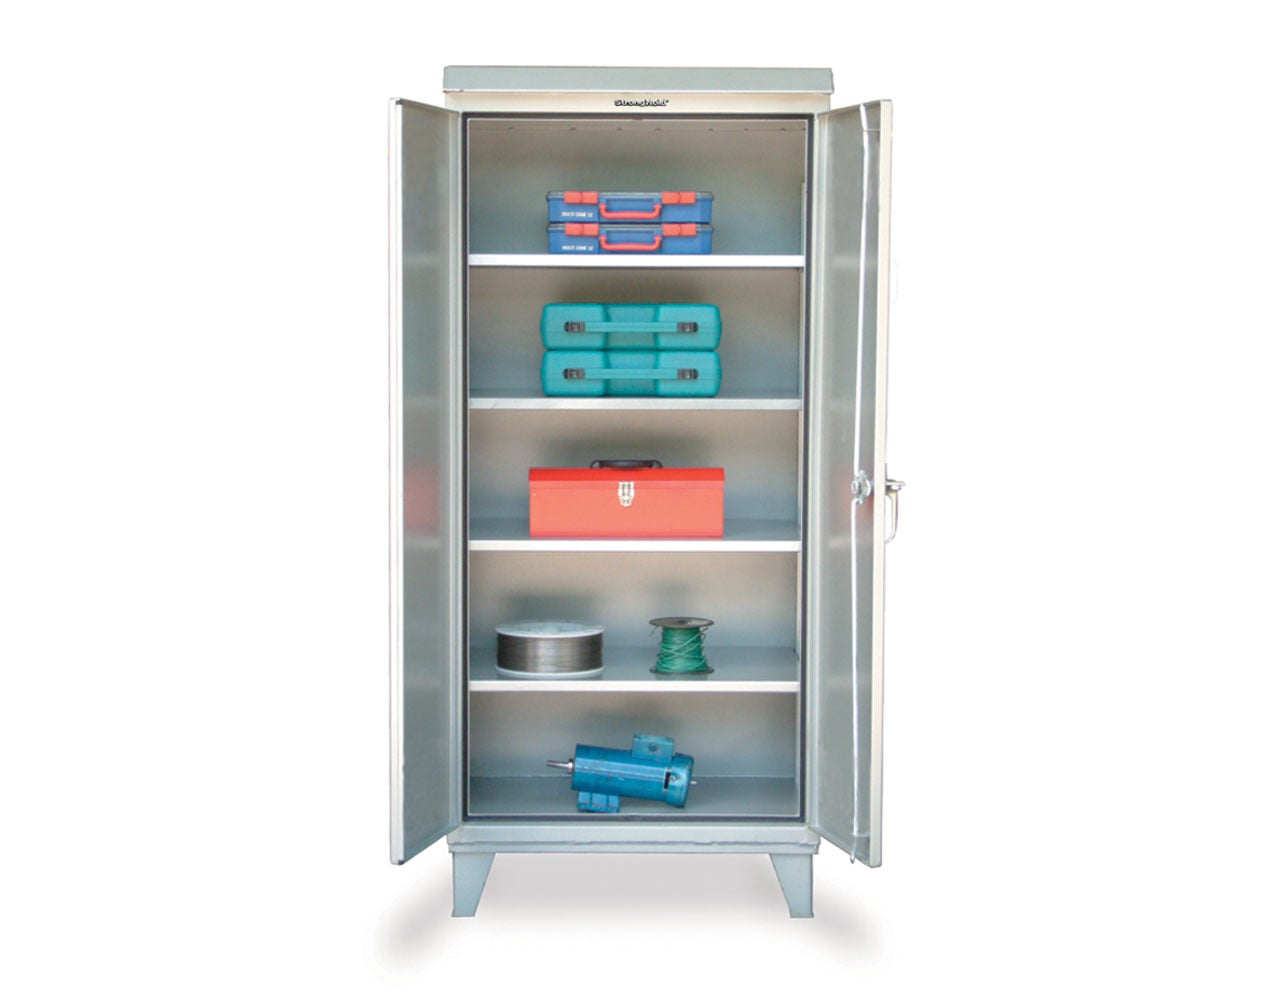 Extra Heavy Duty 12 GA Stainless Steel Weather-Resistant Cabinet with 4 Shelves – 48 In. W x 24 In. D x 78 In. H